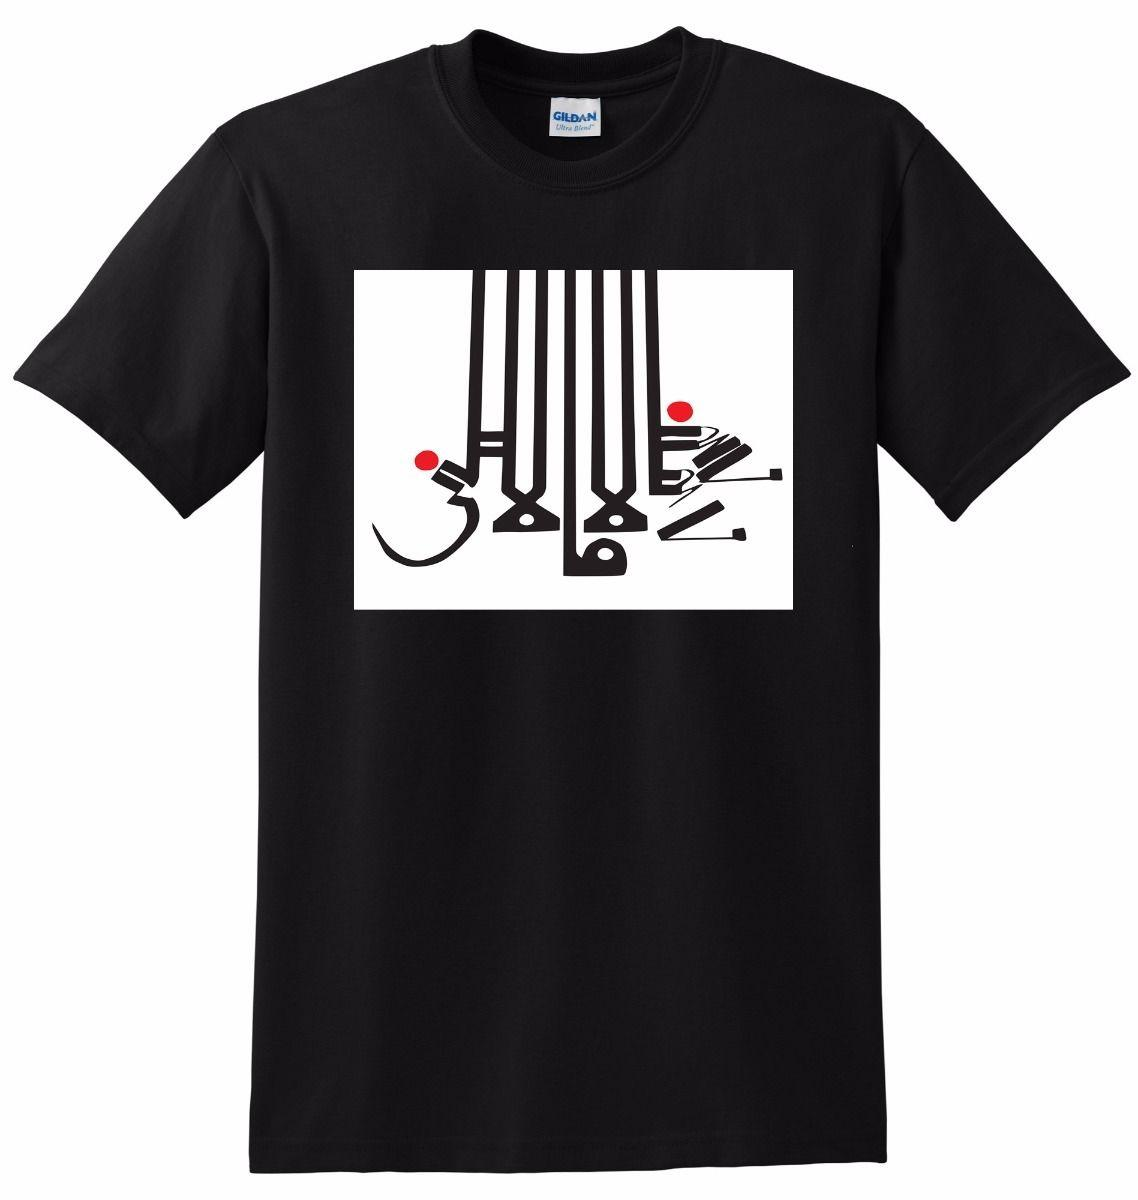 9b4a7d292e23 SHABAZZ PALACES T SHIRT Lese Majesty SMALL MEDIUM LARGE Or XL Mens 2018  Fashion Brand T Shirt O Neck 100%cotton T Shirt Tops Tee Humor Tees Funny  Tee From ...